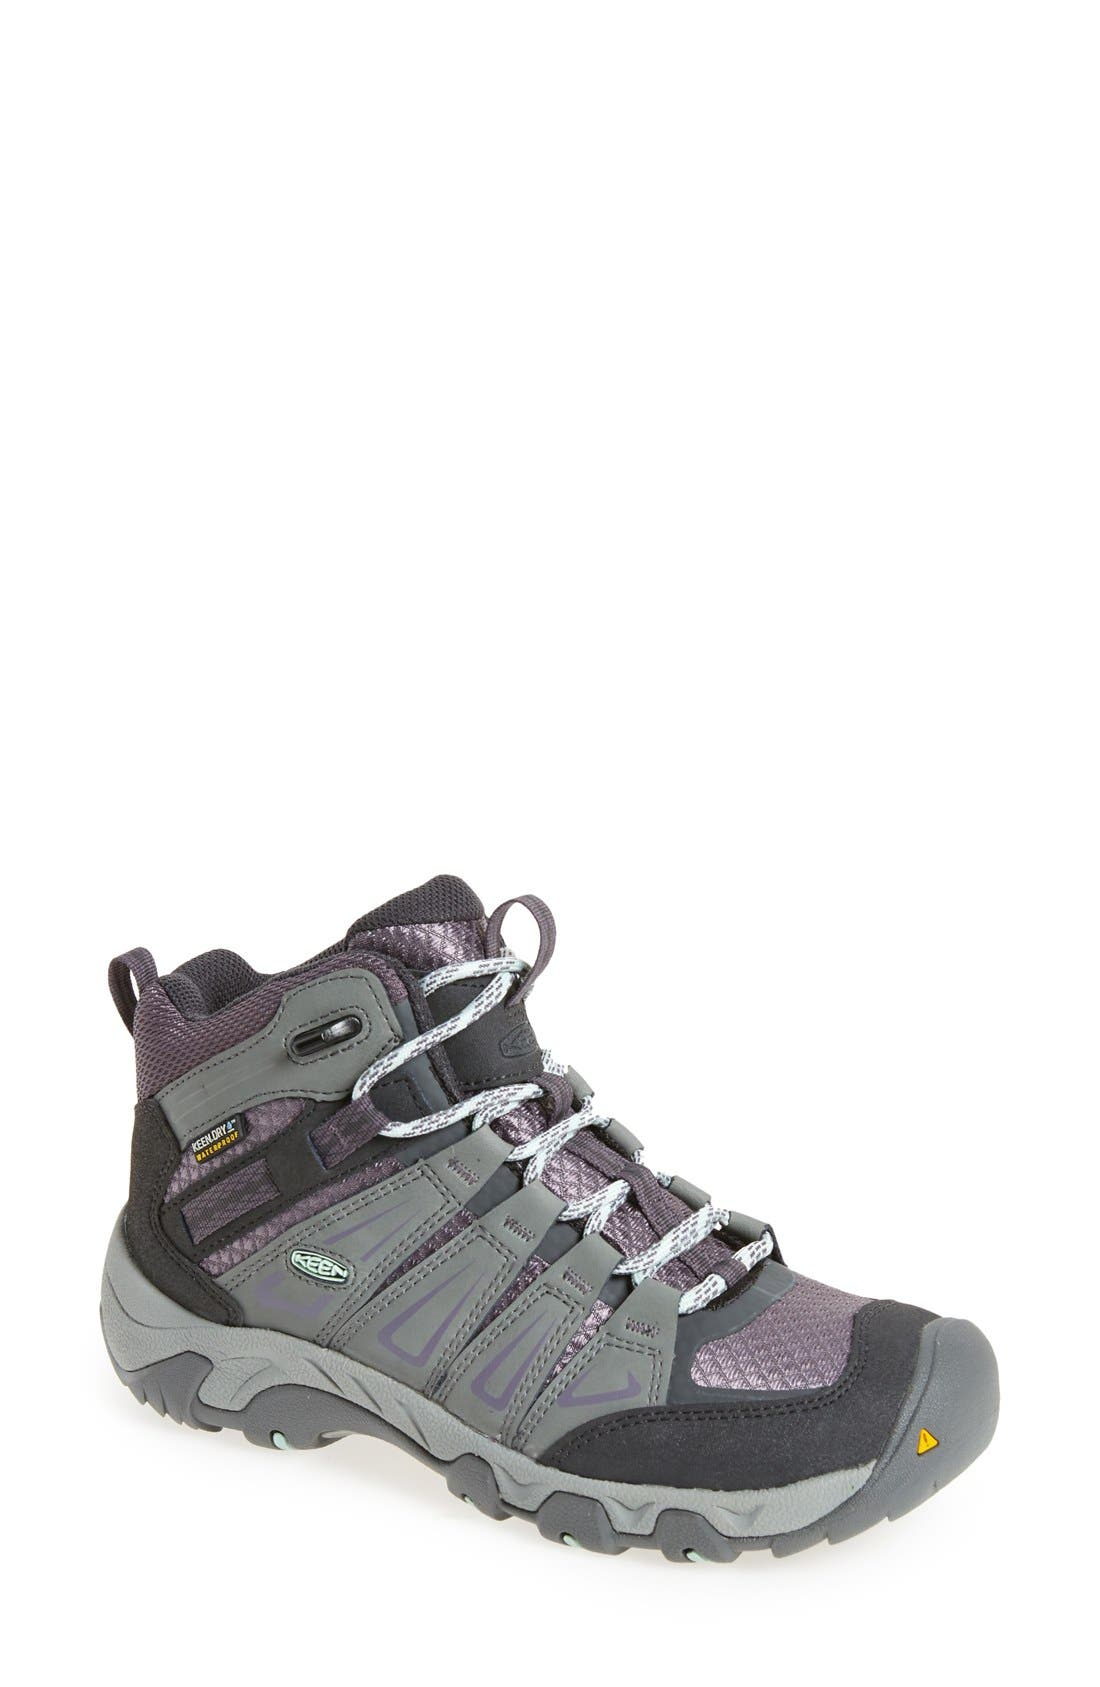 Alternate Image 1 Selected - Keen 'Oakridge' Waterproof Hiking Boot (Women)